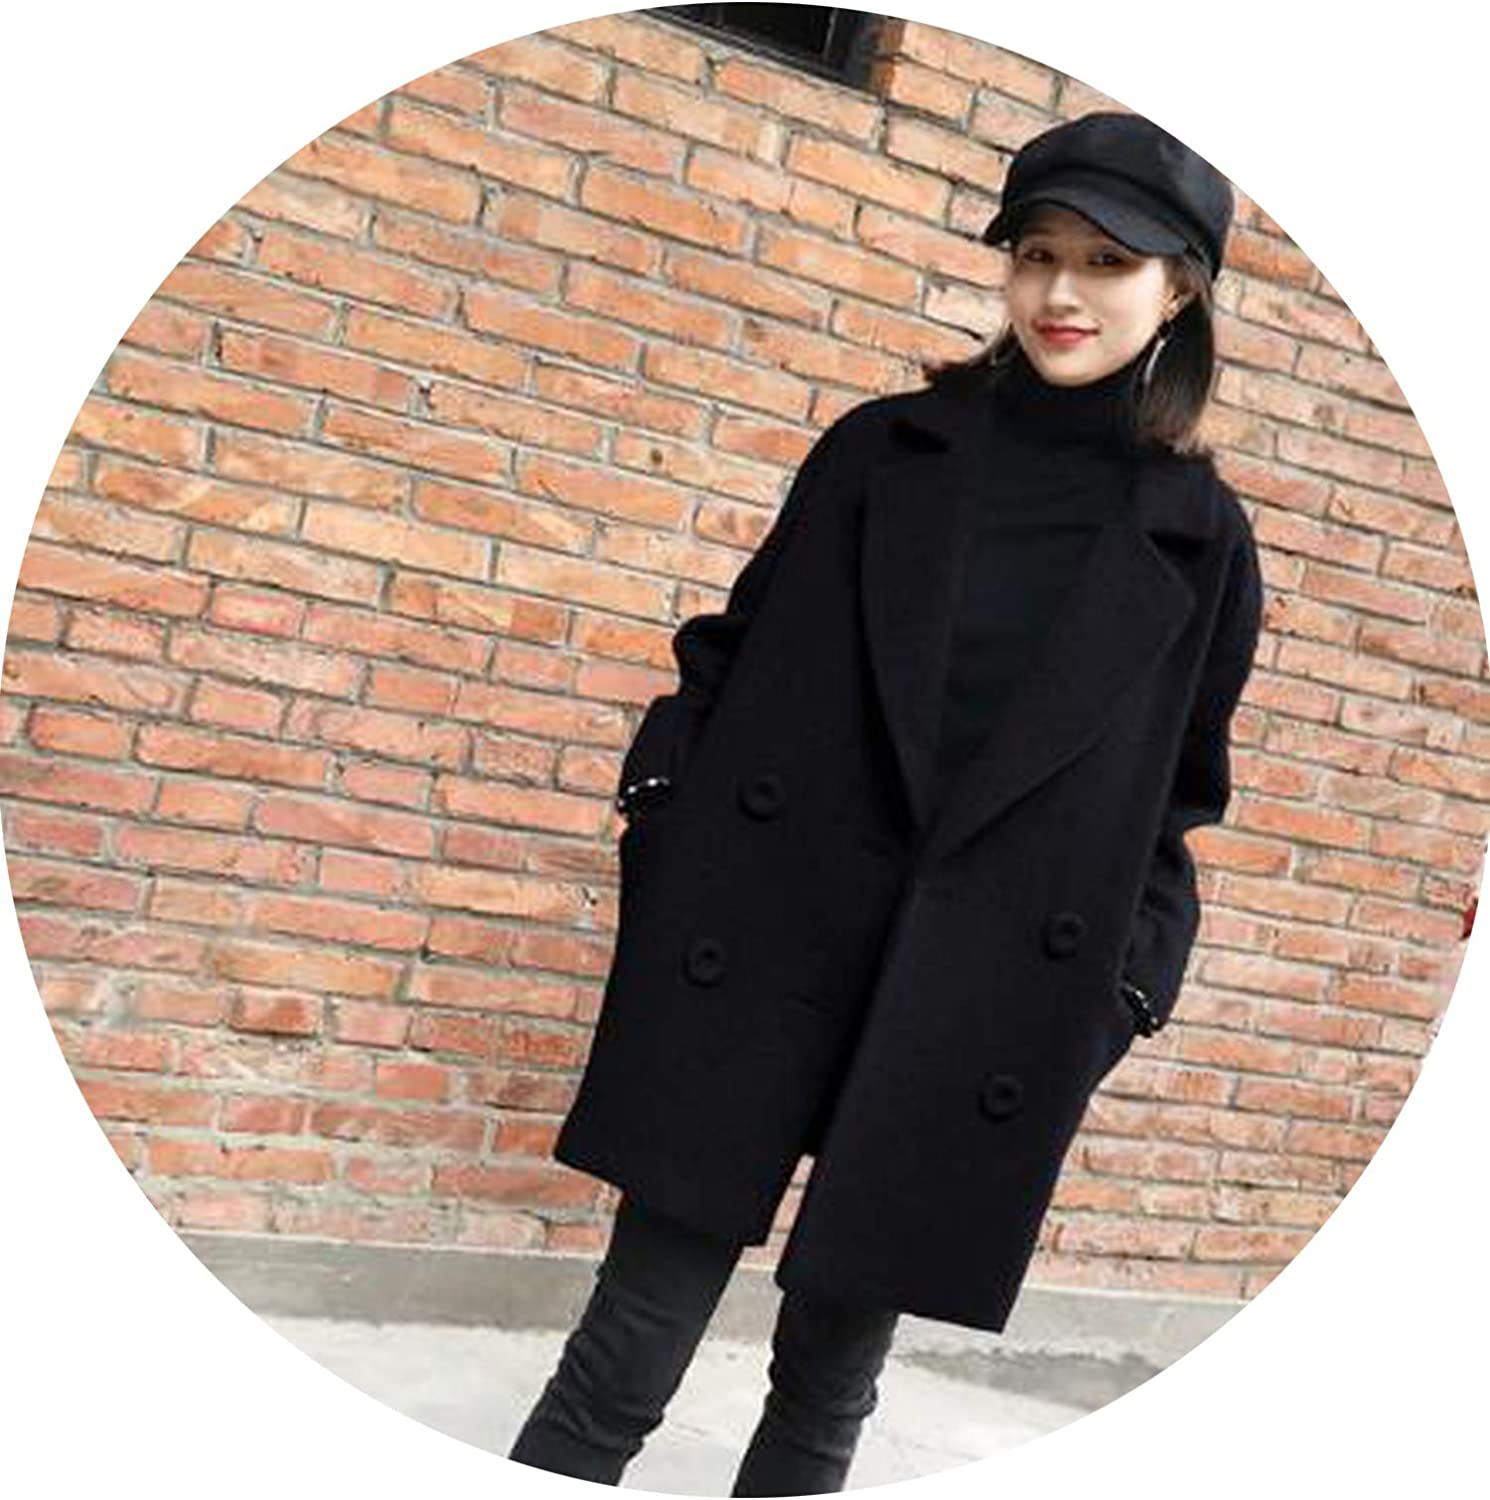 Jifnhtrs Girl Wool Coat Jacket Women Long Coat Thicken Loose DoubleBreasted Black Jacket